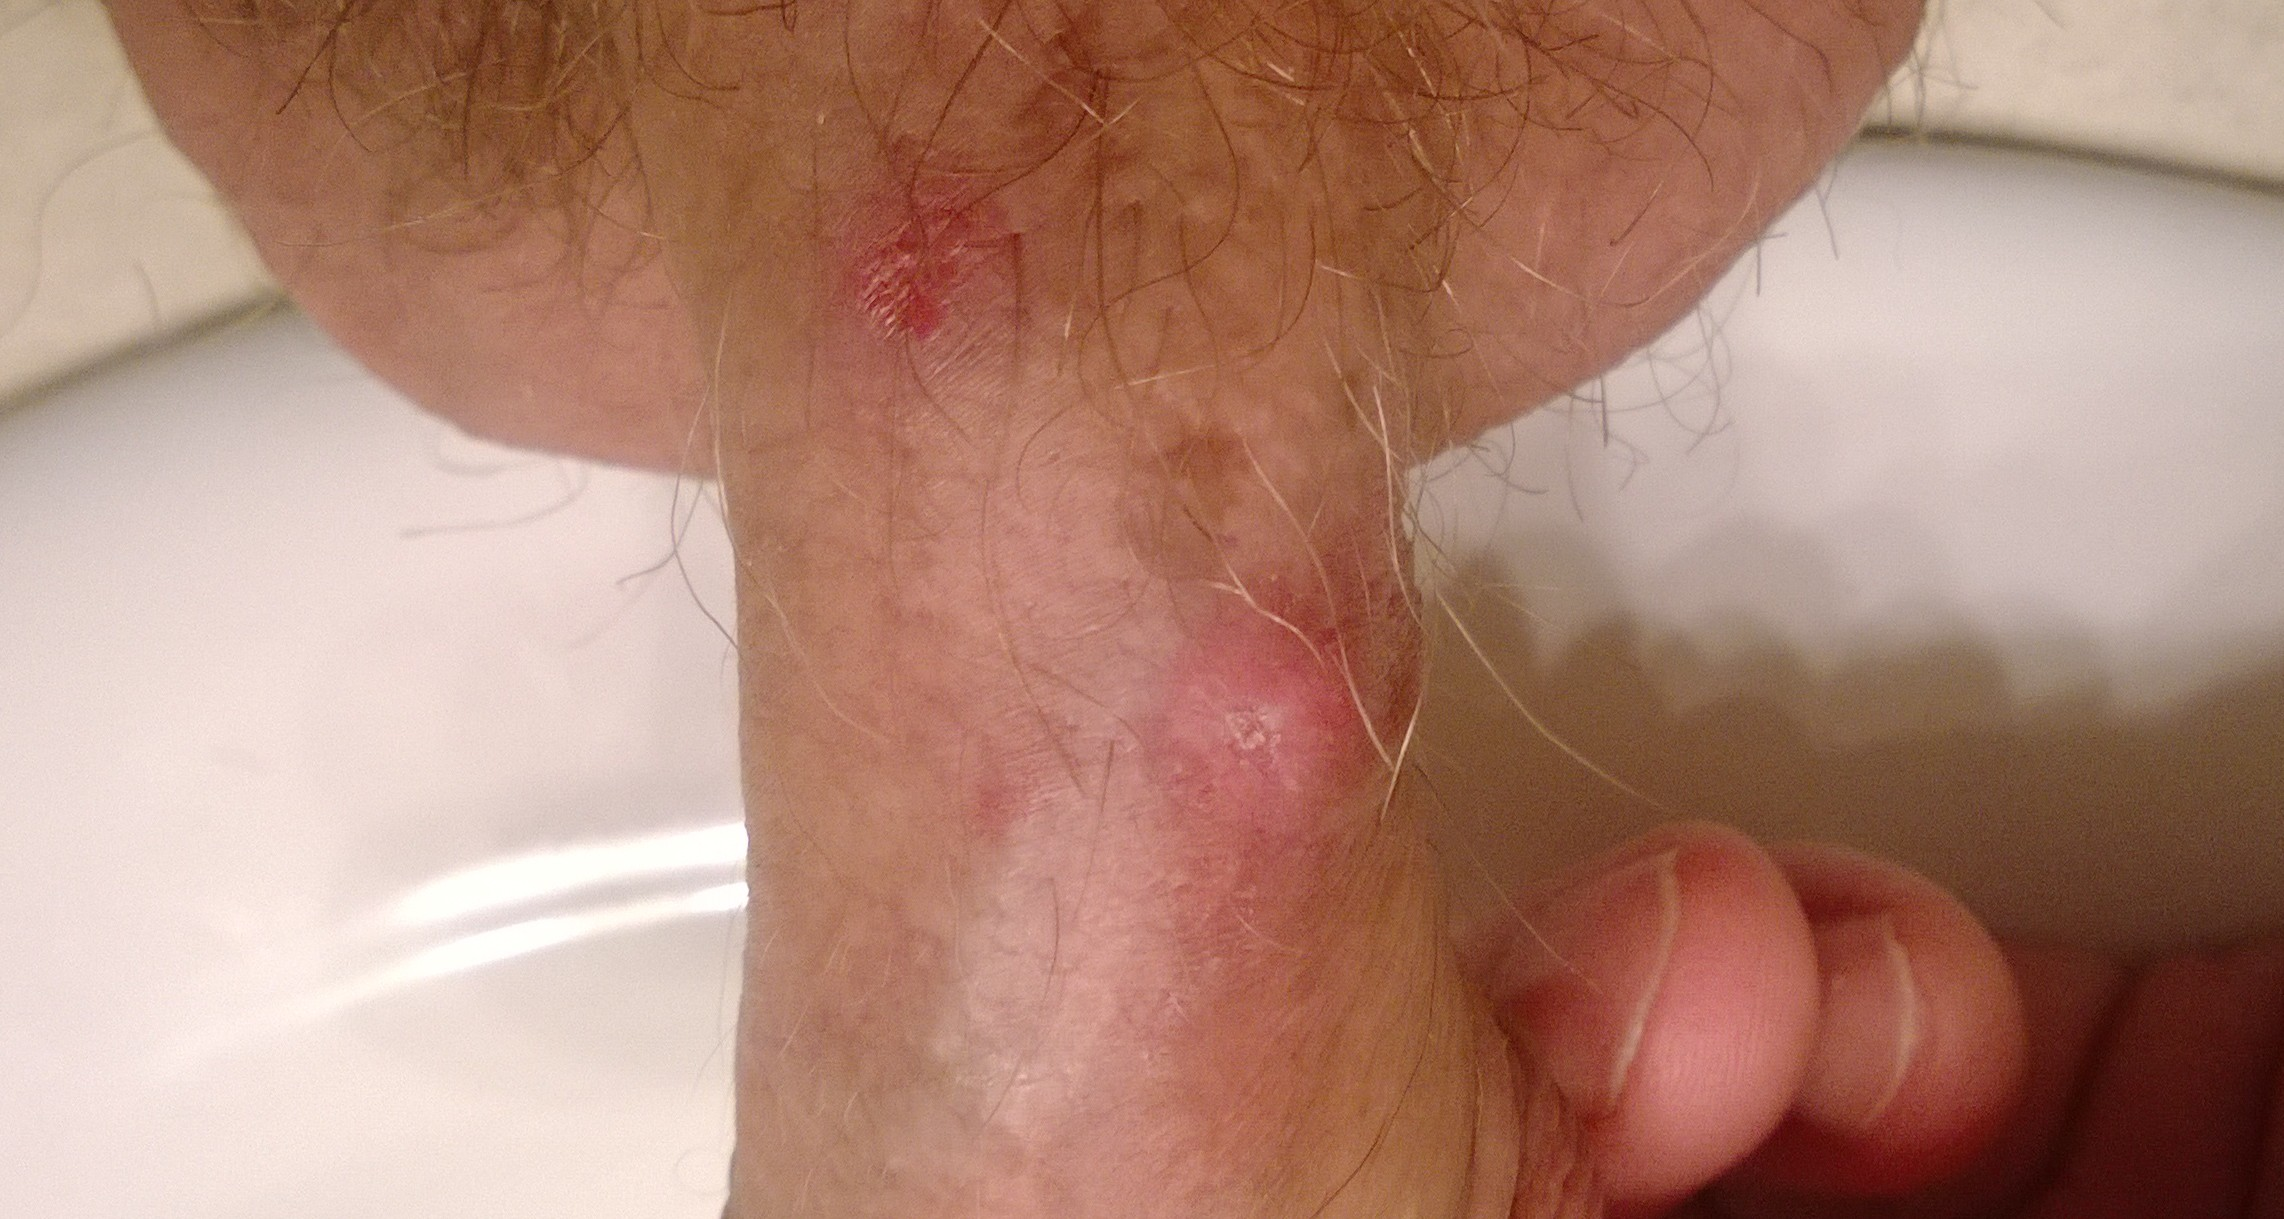 Pictures of anal folliculitis